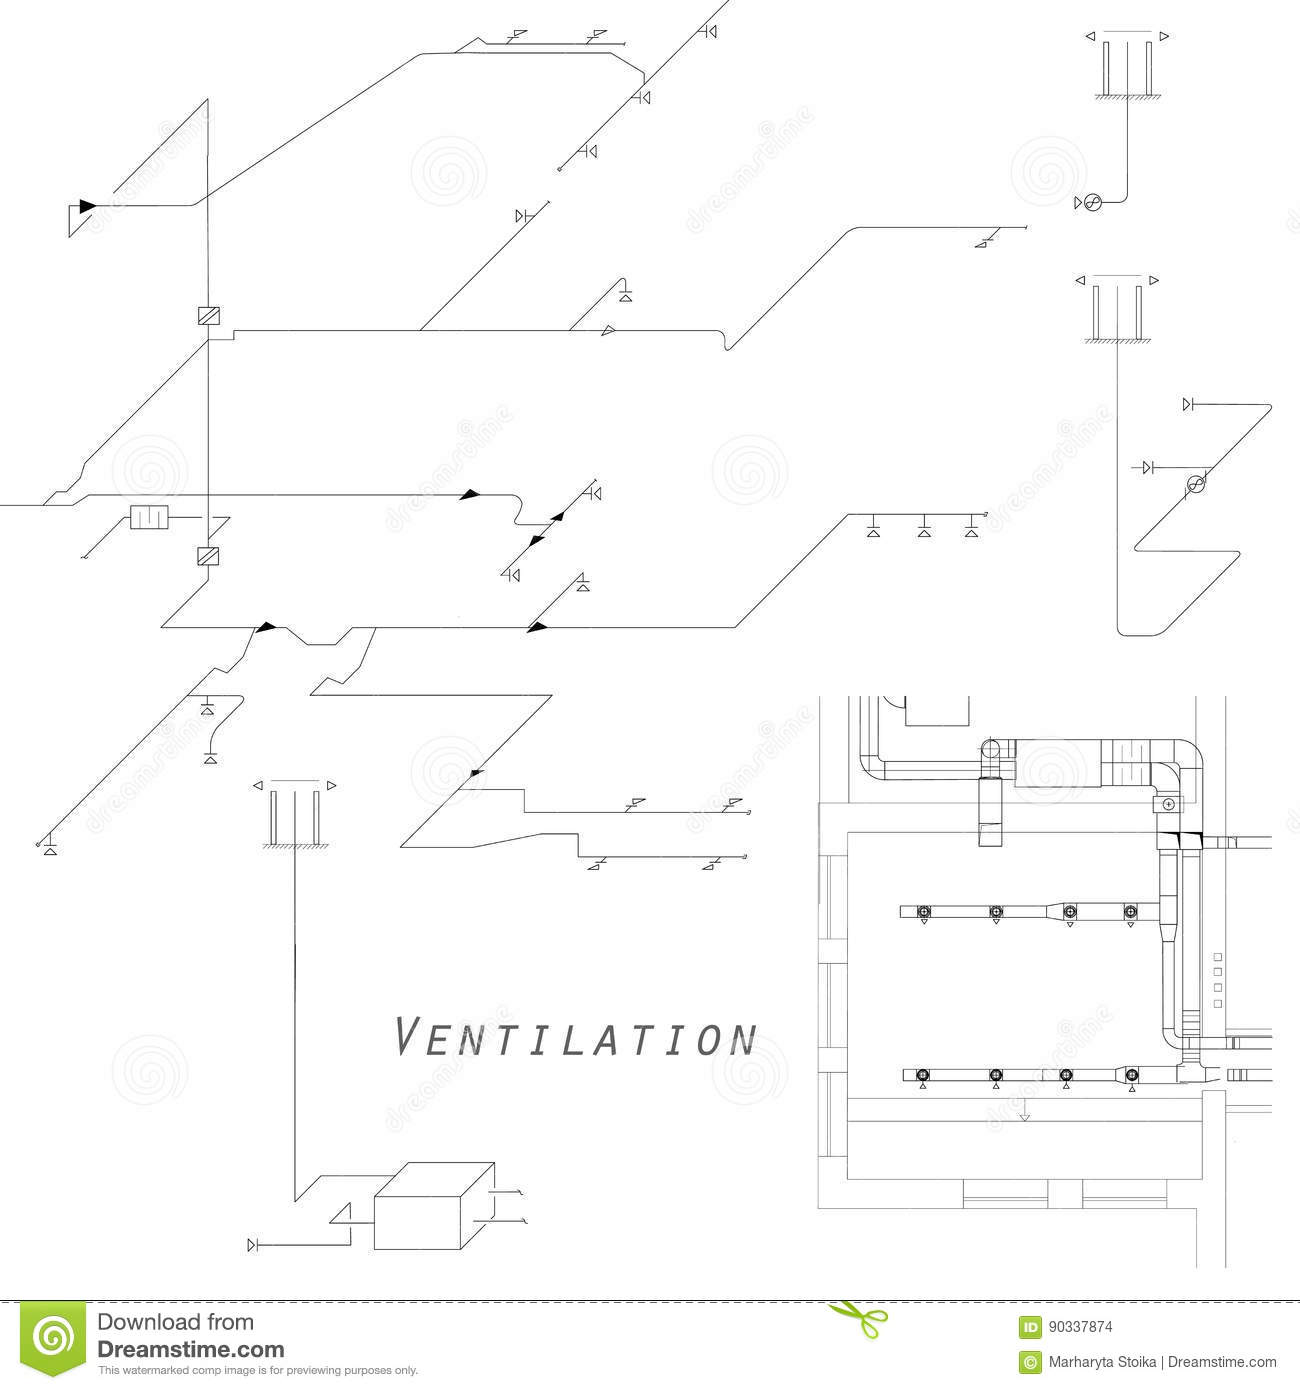 Hvac Isometric Drawing Wiring Diagram Ducting Pictures Libraryaxonometric View Of The Ventilation System Vector Design For Ducts